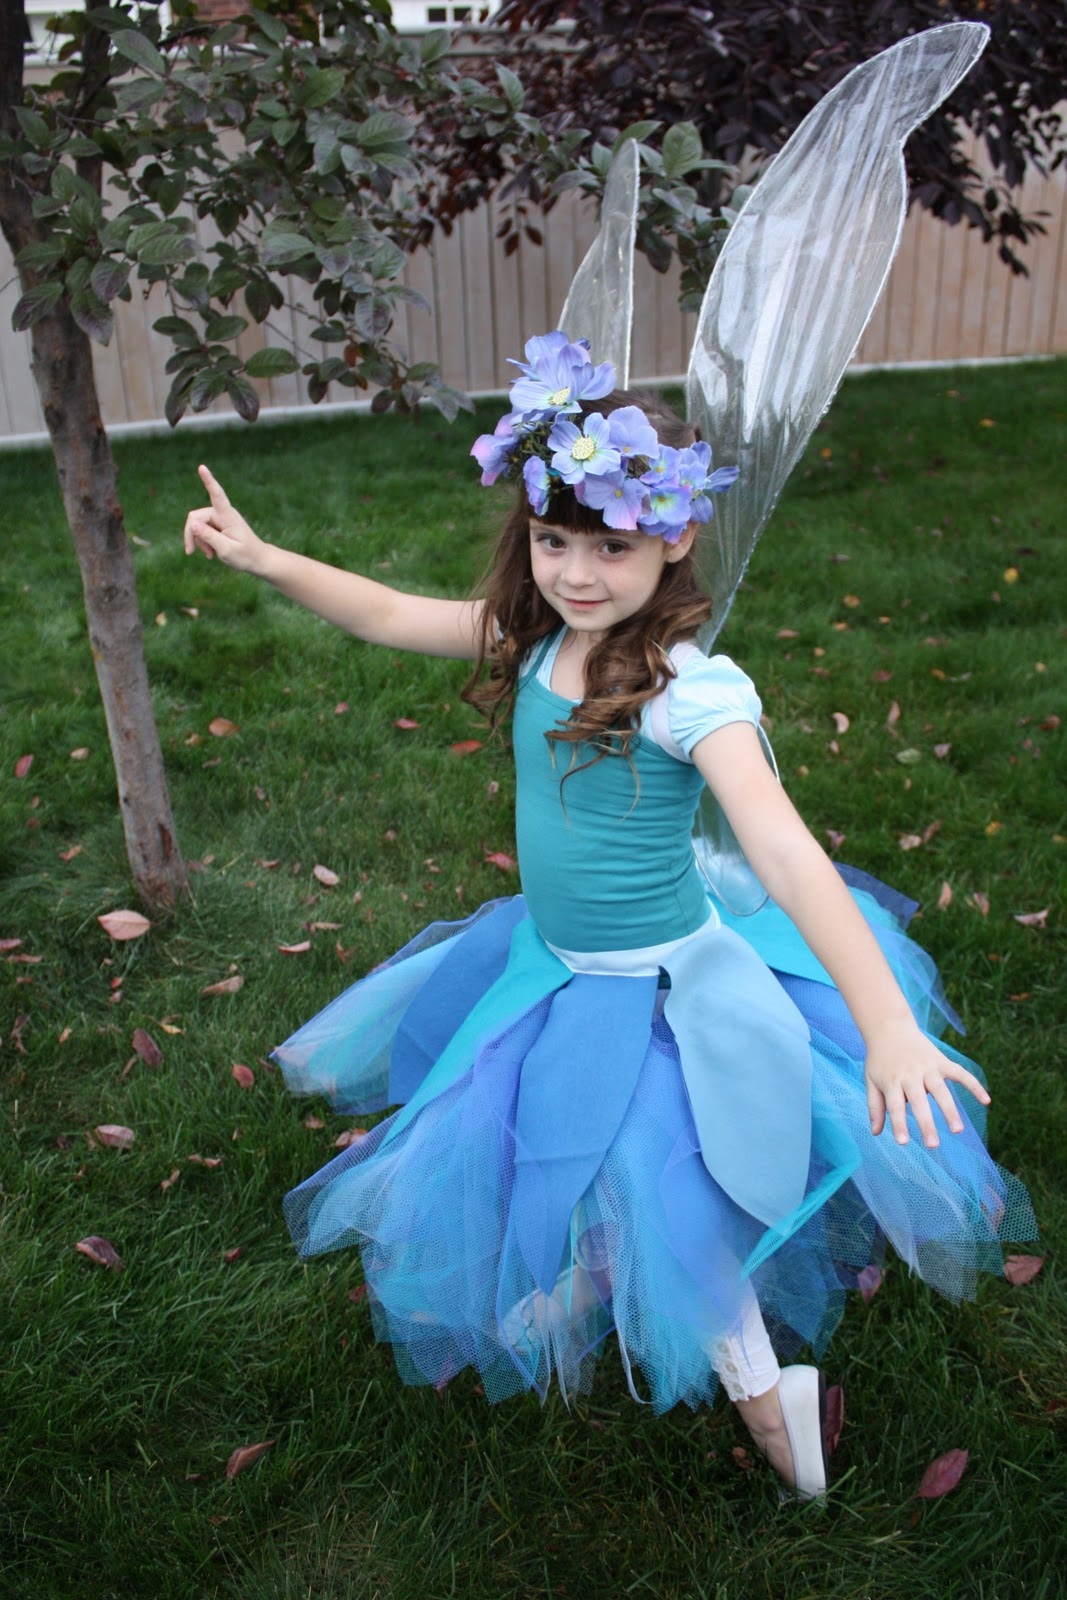 At Second Street: Pixie Fairy Pricesses